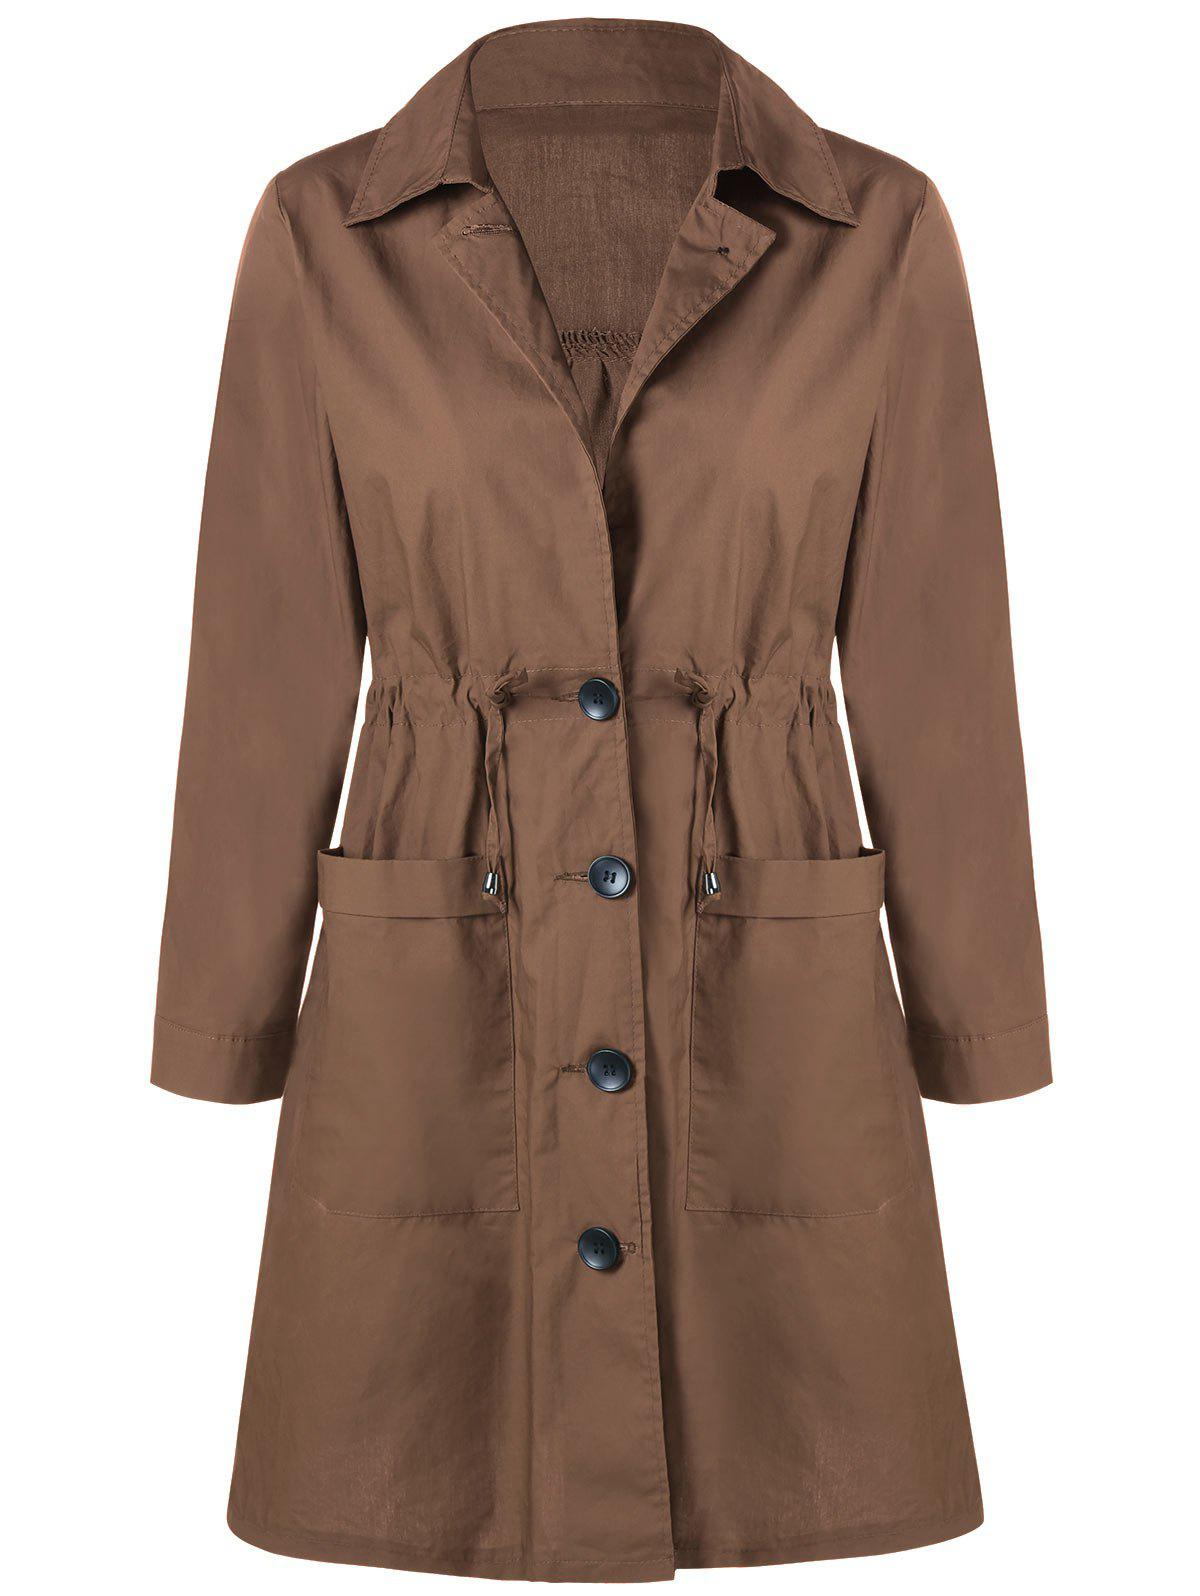 Plus Size Drawstring Front Pocket Single Breasted CoatWOMEN<br><br>Size: 5XL; Color: KHAKI; Clothes Type: Others; Material: Polyester,Spandex; Type: Wide-waisted; Shirt Length: Long; Sleeve Length: Full; Collar: Turn-down Collar; Closure Type: Single Breasted; Pattern Type: Solid; Embellishment: Pockets; Style: Fashion; Season: Fall,Spring; Weight: 0.6000kg; Package Contents: 1 x Coat;